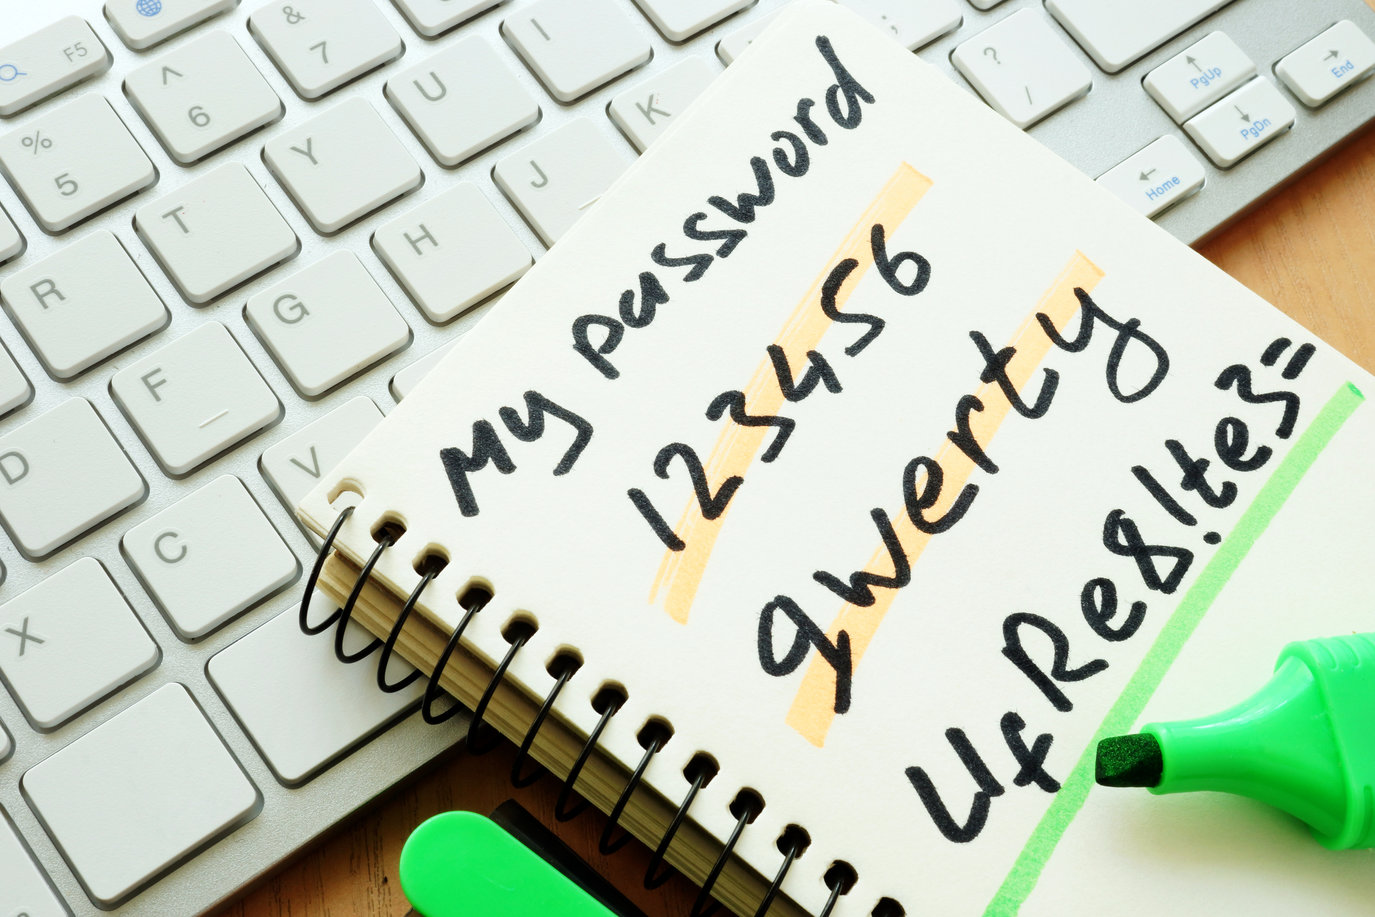 Weak passwords and strong password on notepad